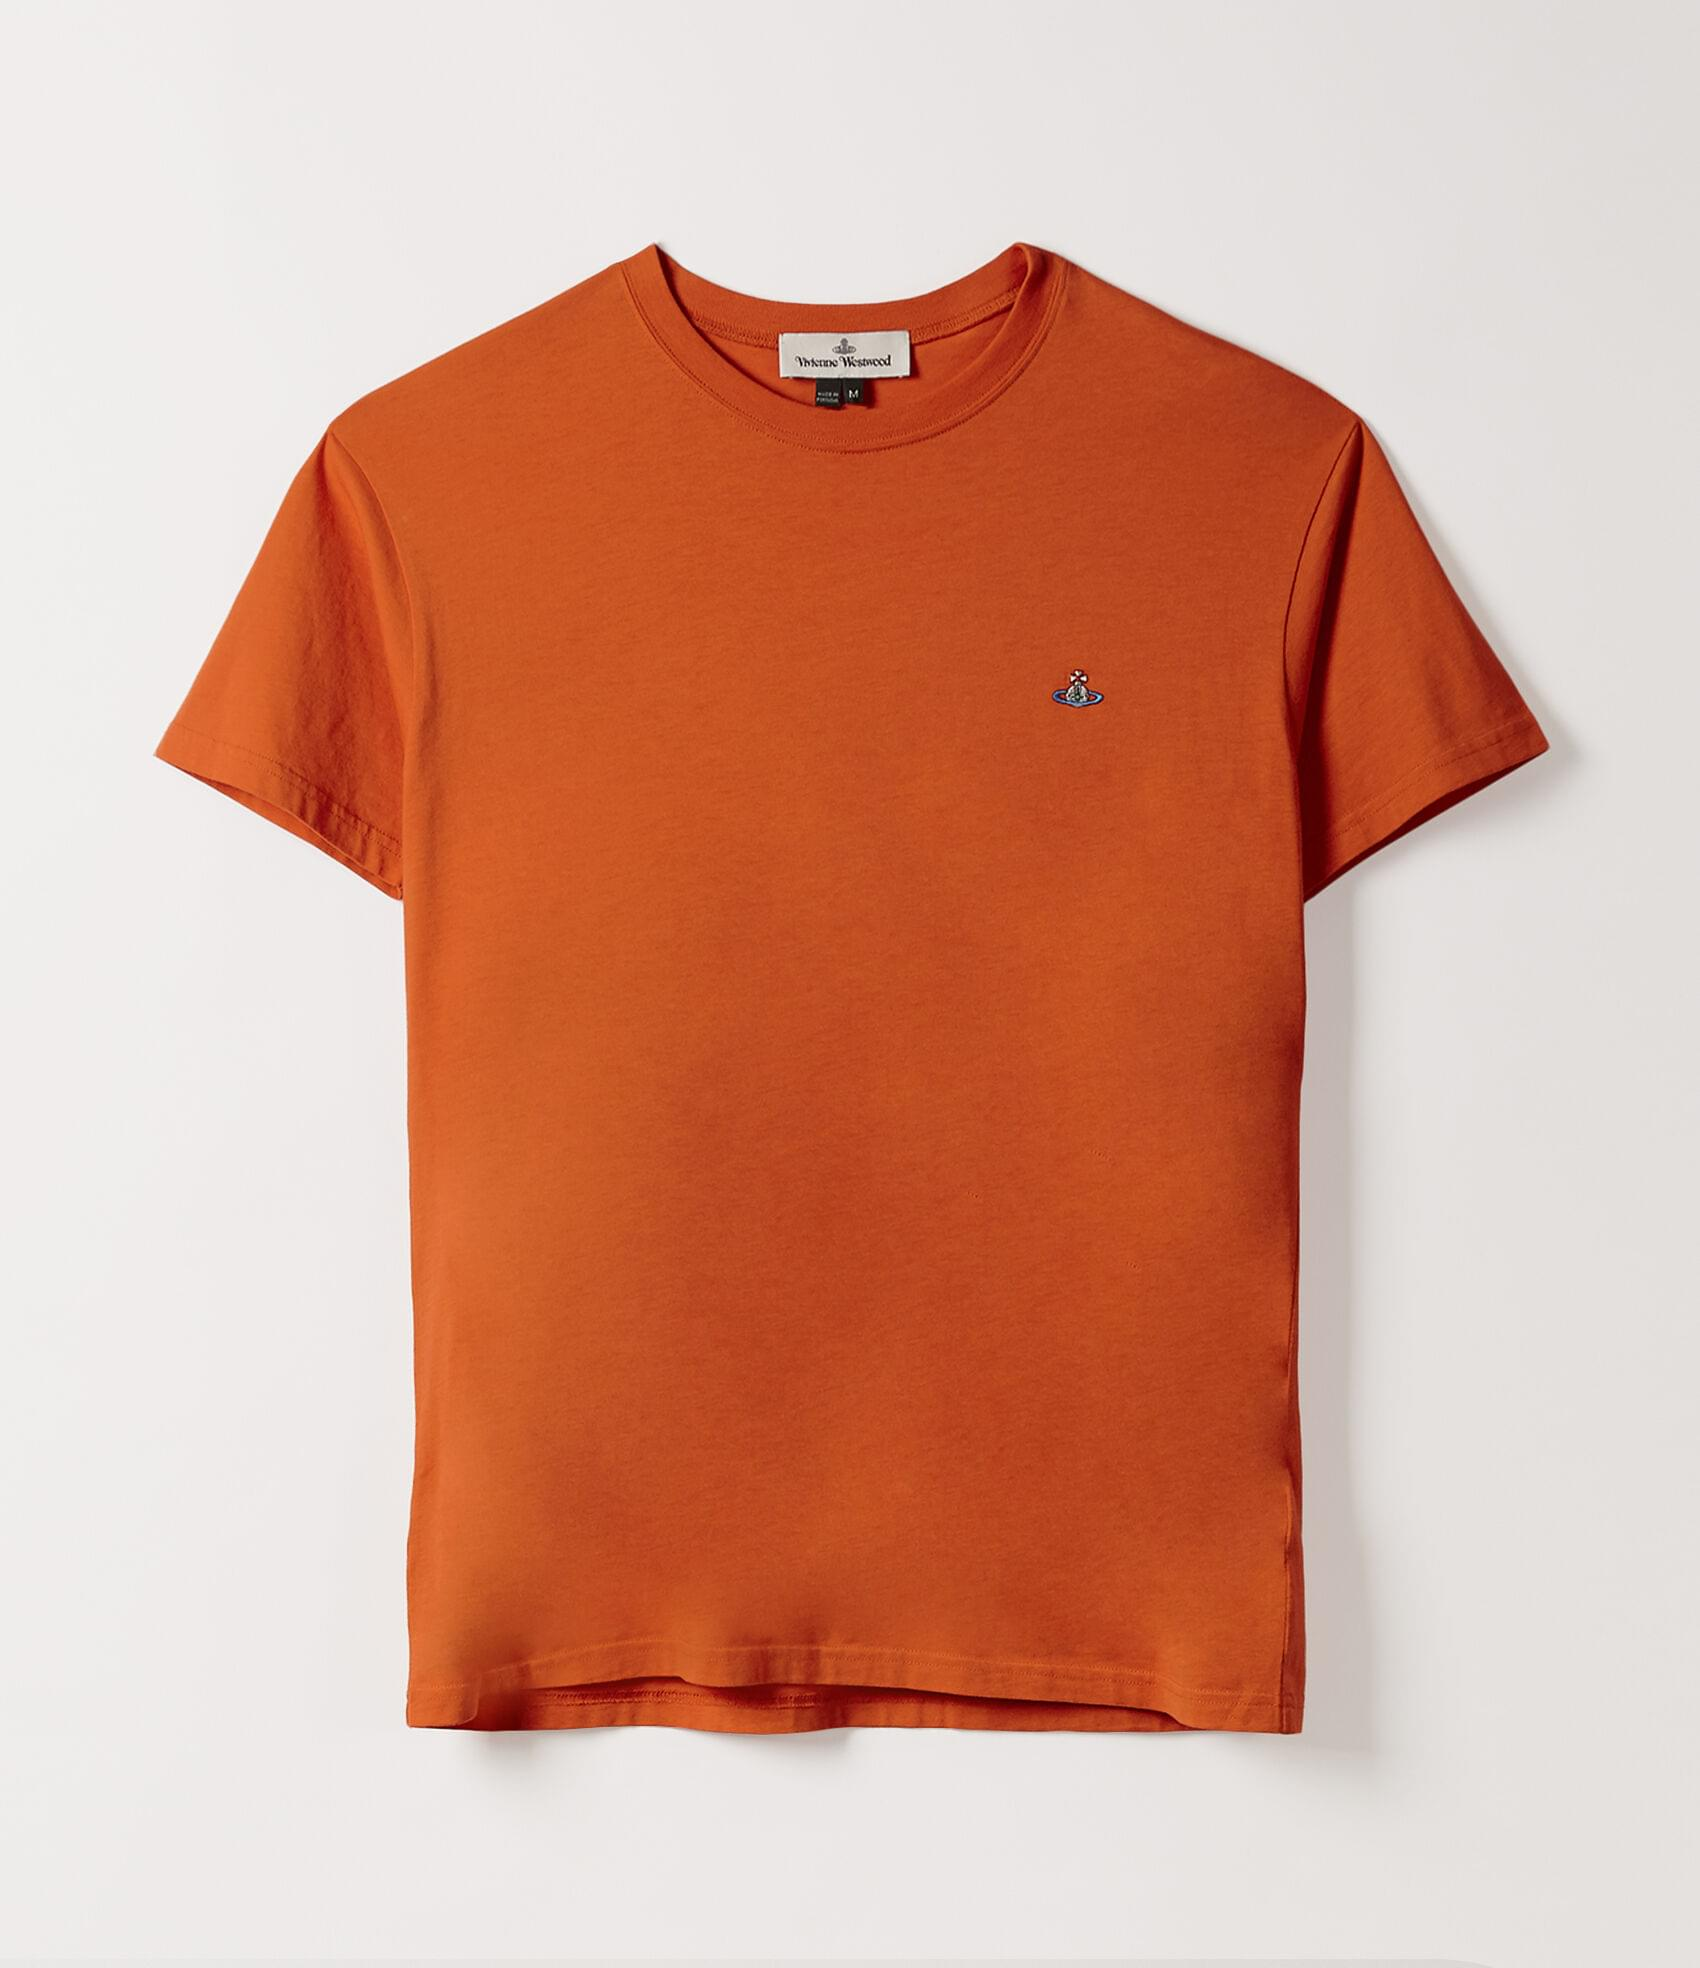 Vivienne Westwood BOXY T-SHIRT ORANGE